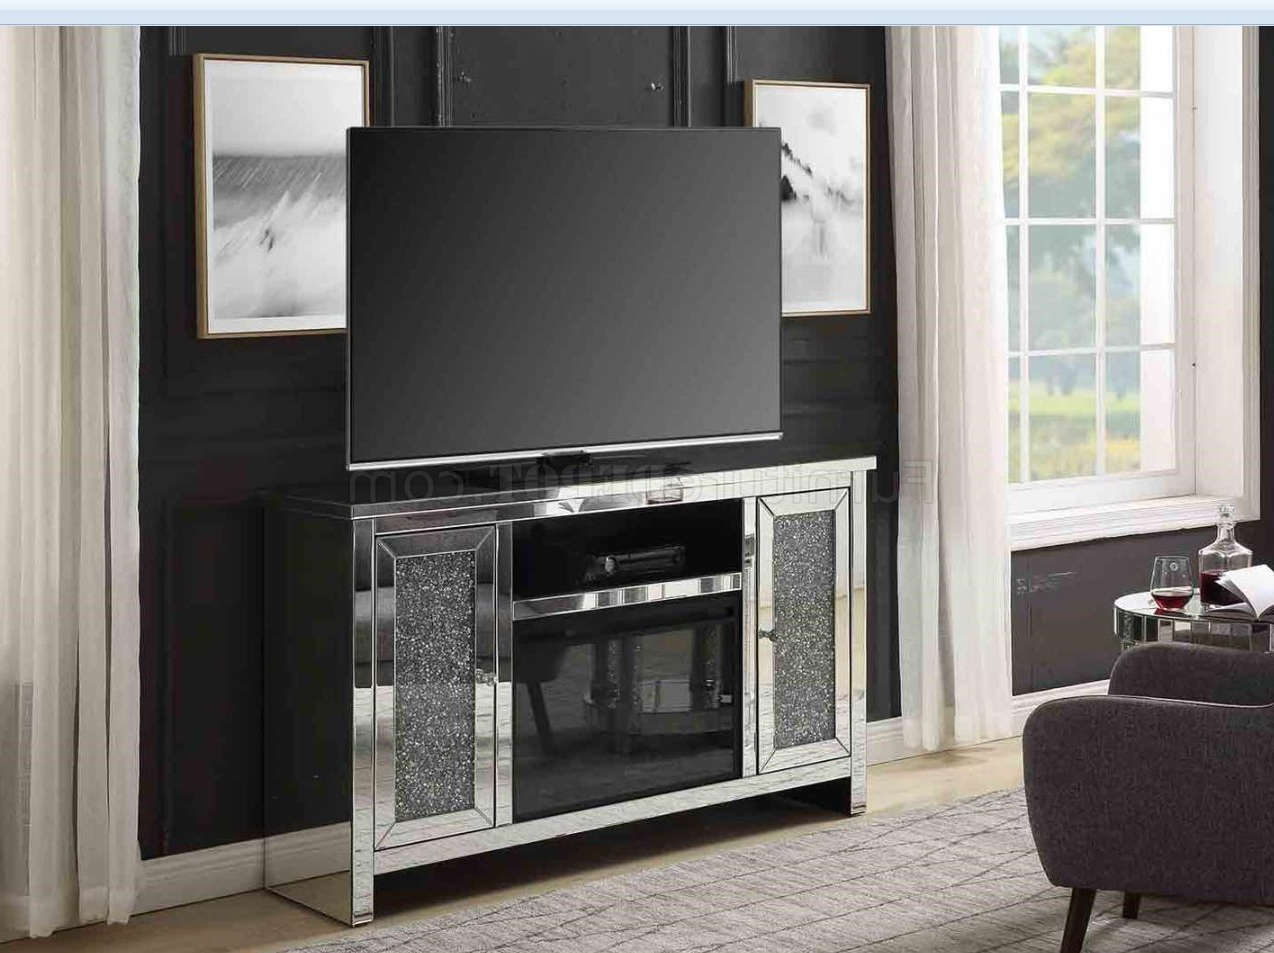 Noralie Tv Stand & Electric Fireplace 91775acme In Mirror For Fitzgerald Mirrored Tv Stands (View 16 of 20)